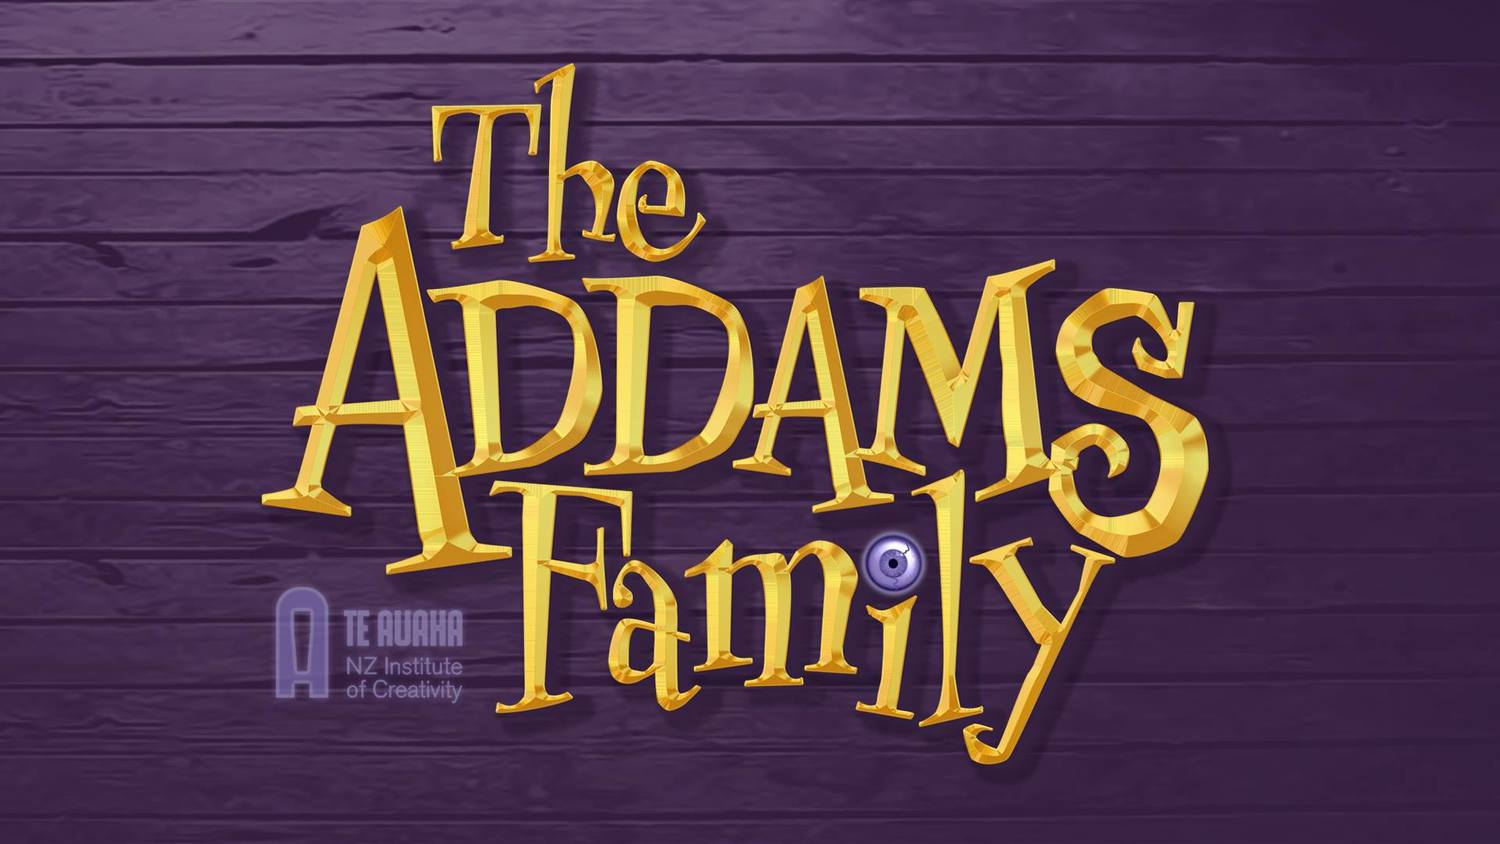 BWW Review: THE ADDAMS FAMILY at Te Auaha Wellington